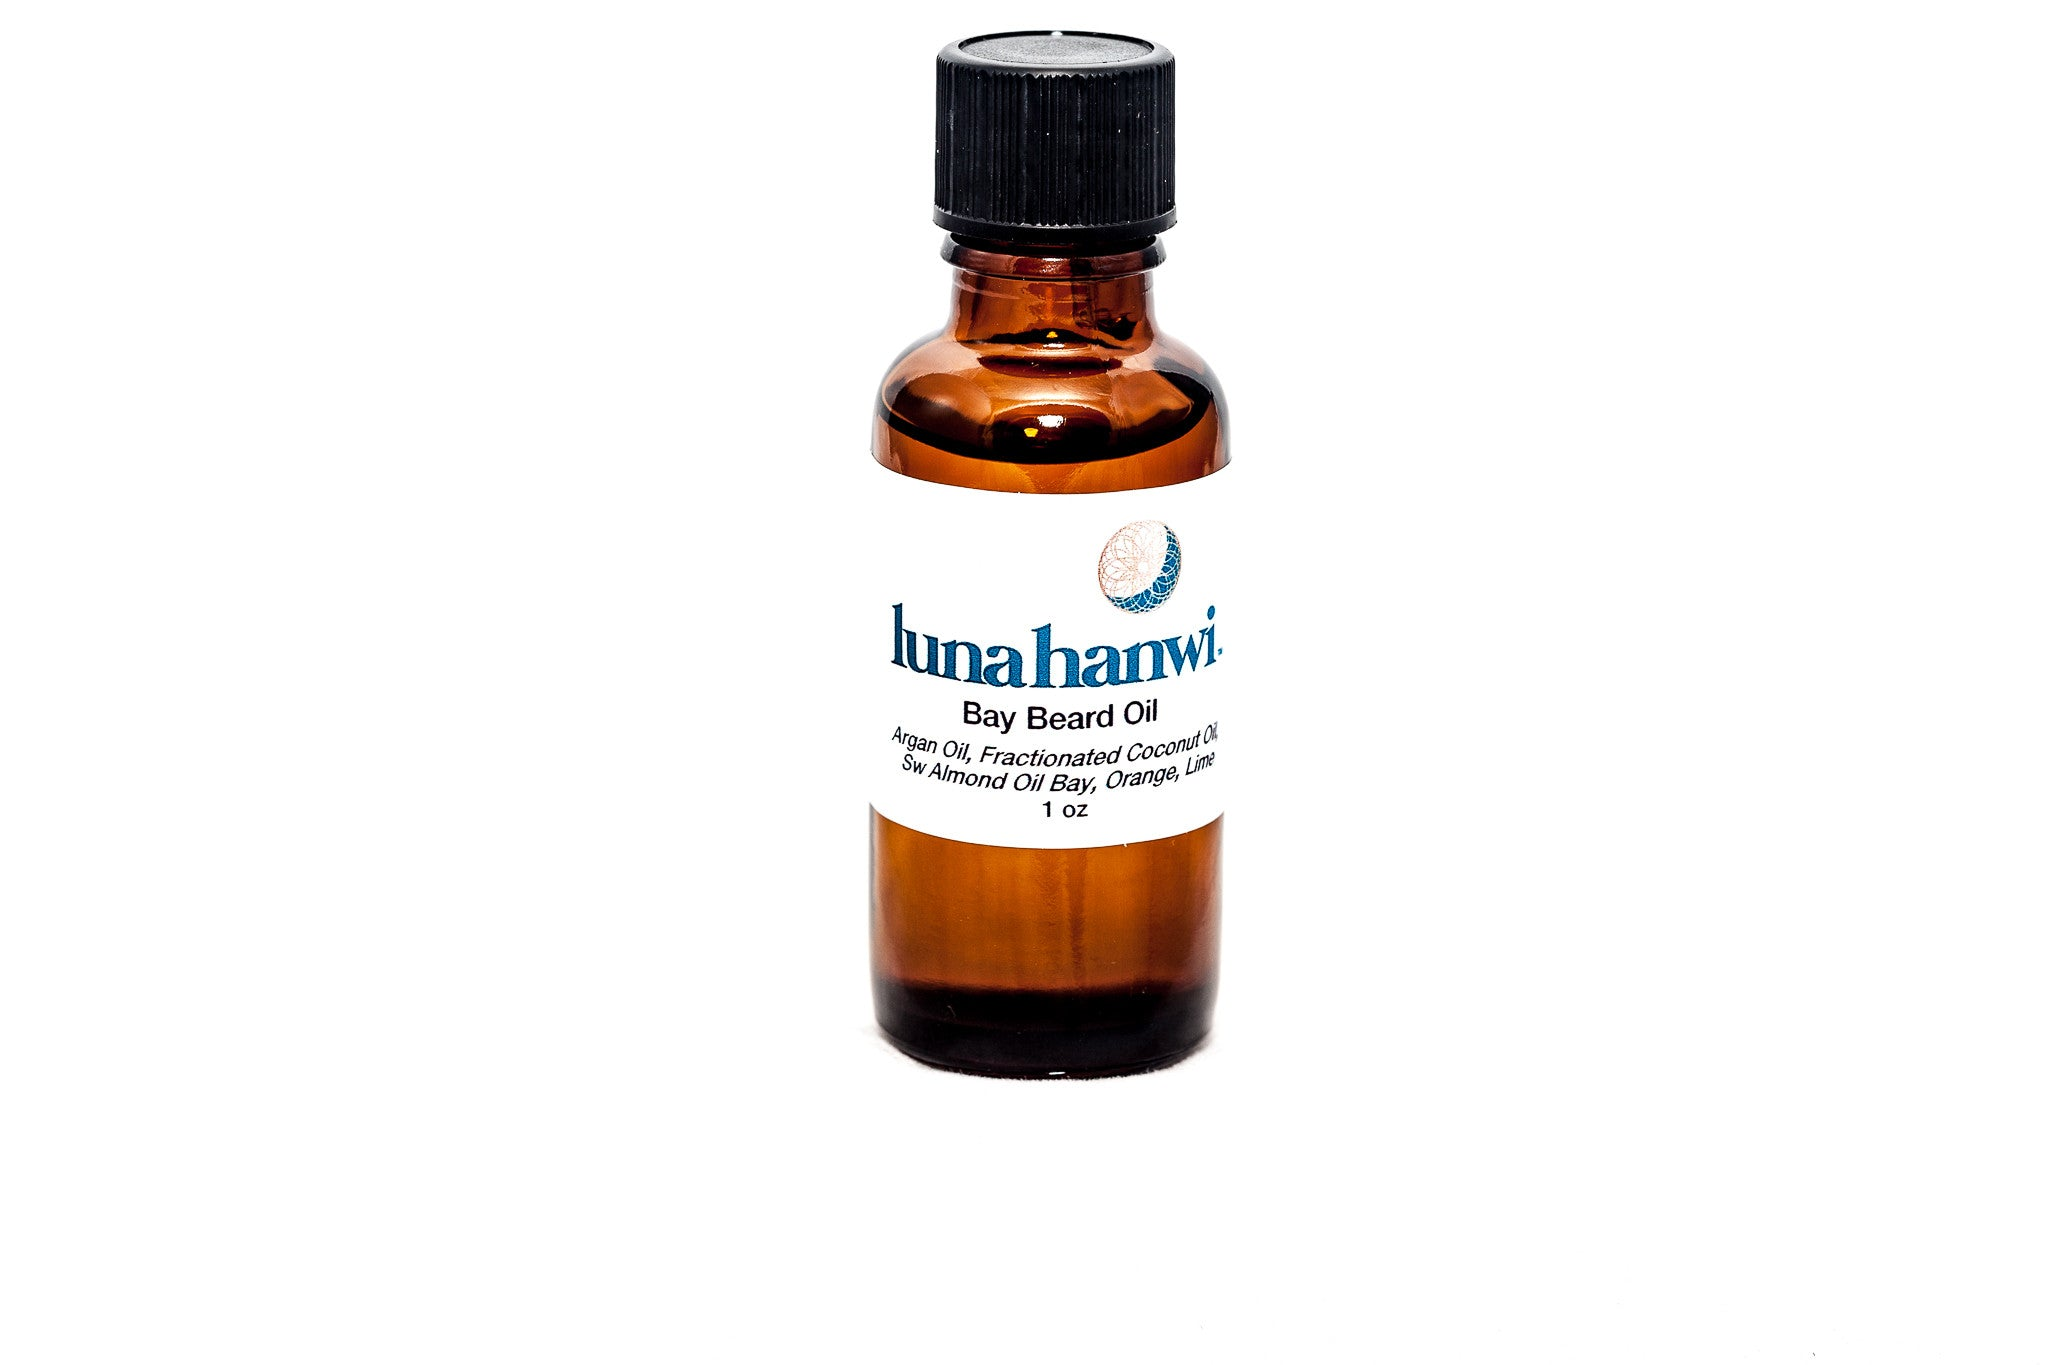 Bay Beard Oil - Luna Hanwi